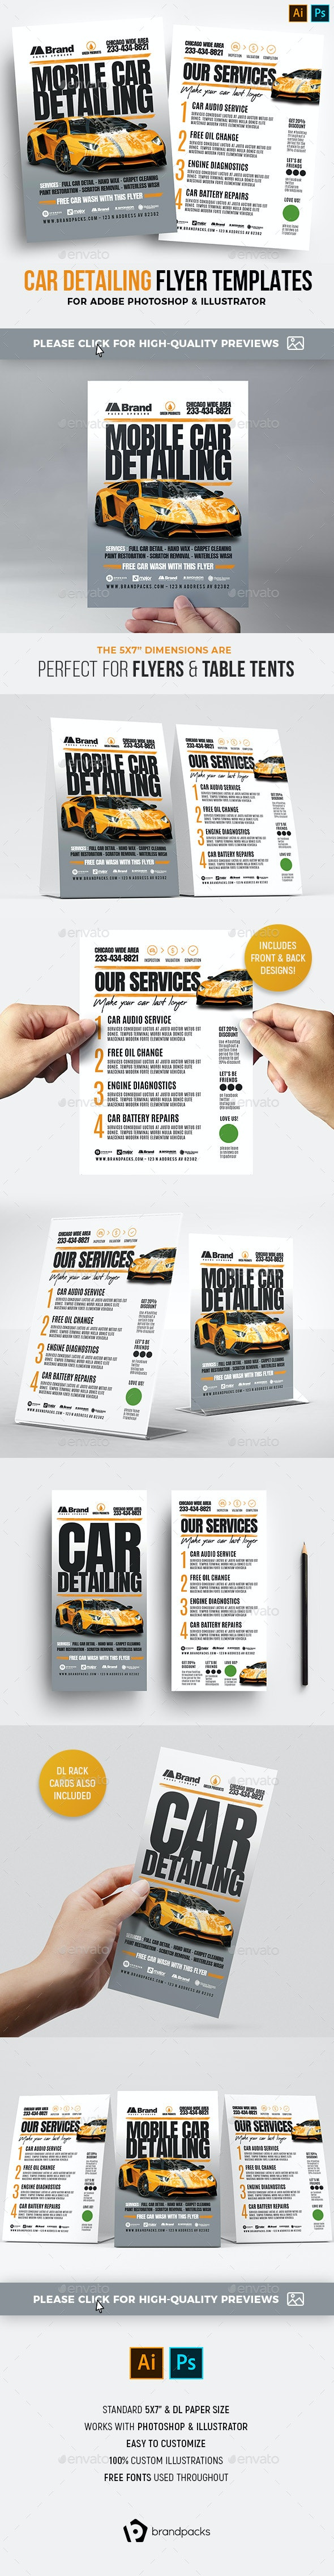 Car Detailing Flyer Template from graphicriver.img.customer.envatousercontent.com